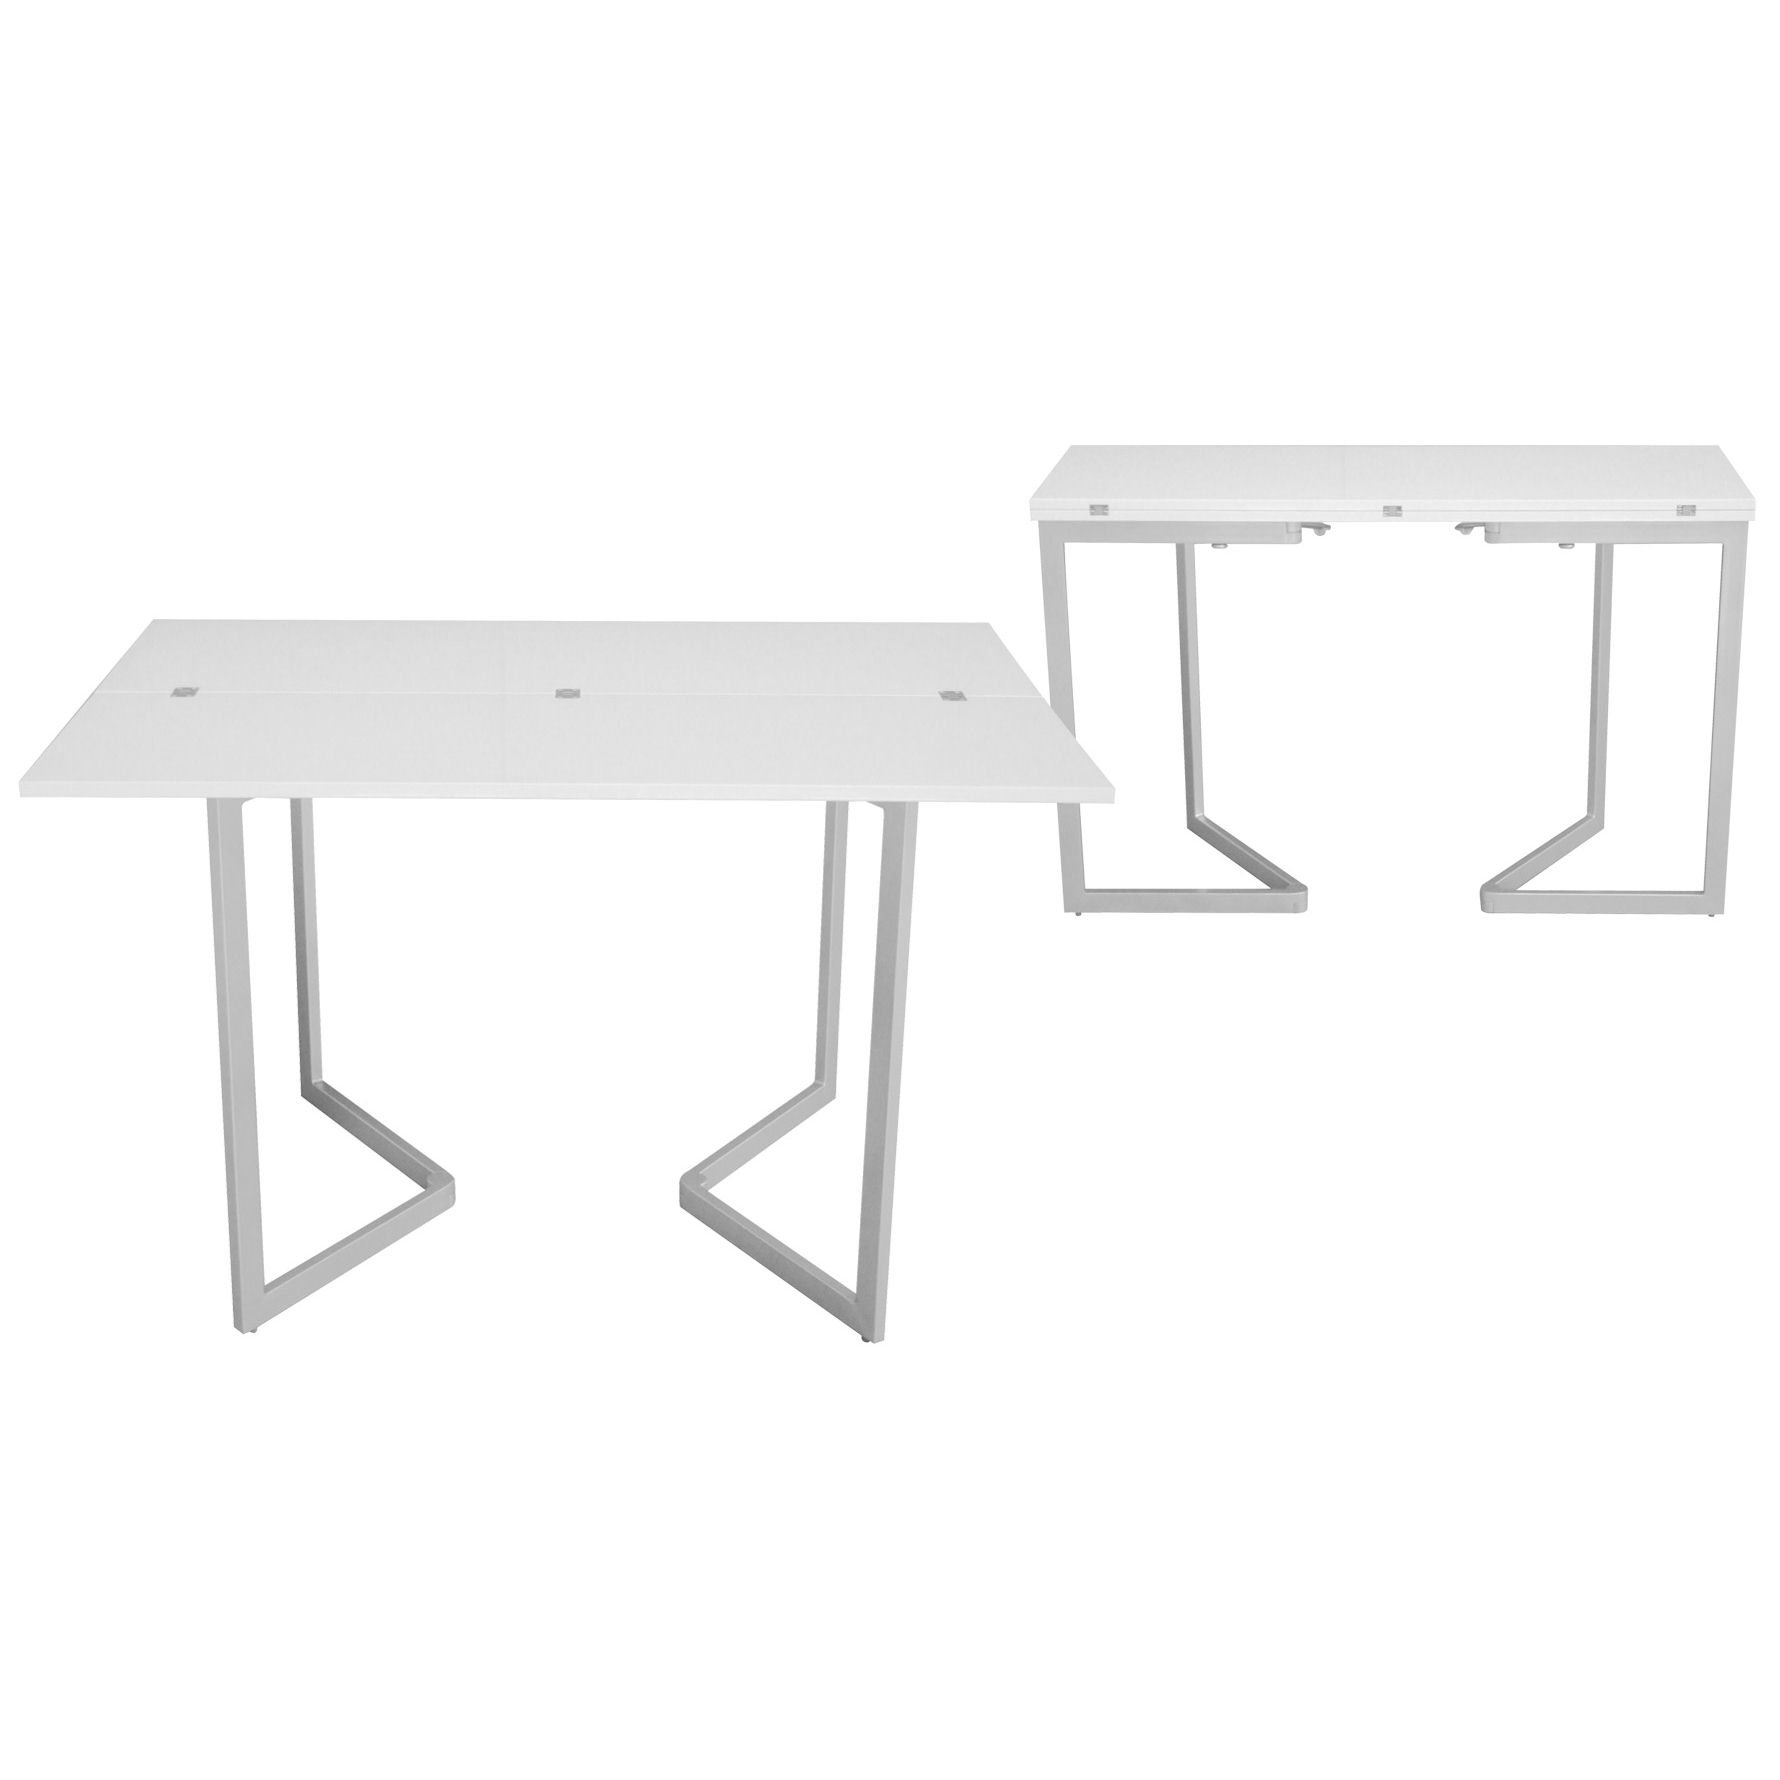 deco in paris table console extensible blanche laquee. Black Bedroom Furniture Sets. Home Design Ideas